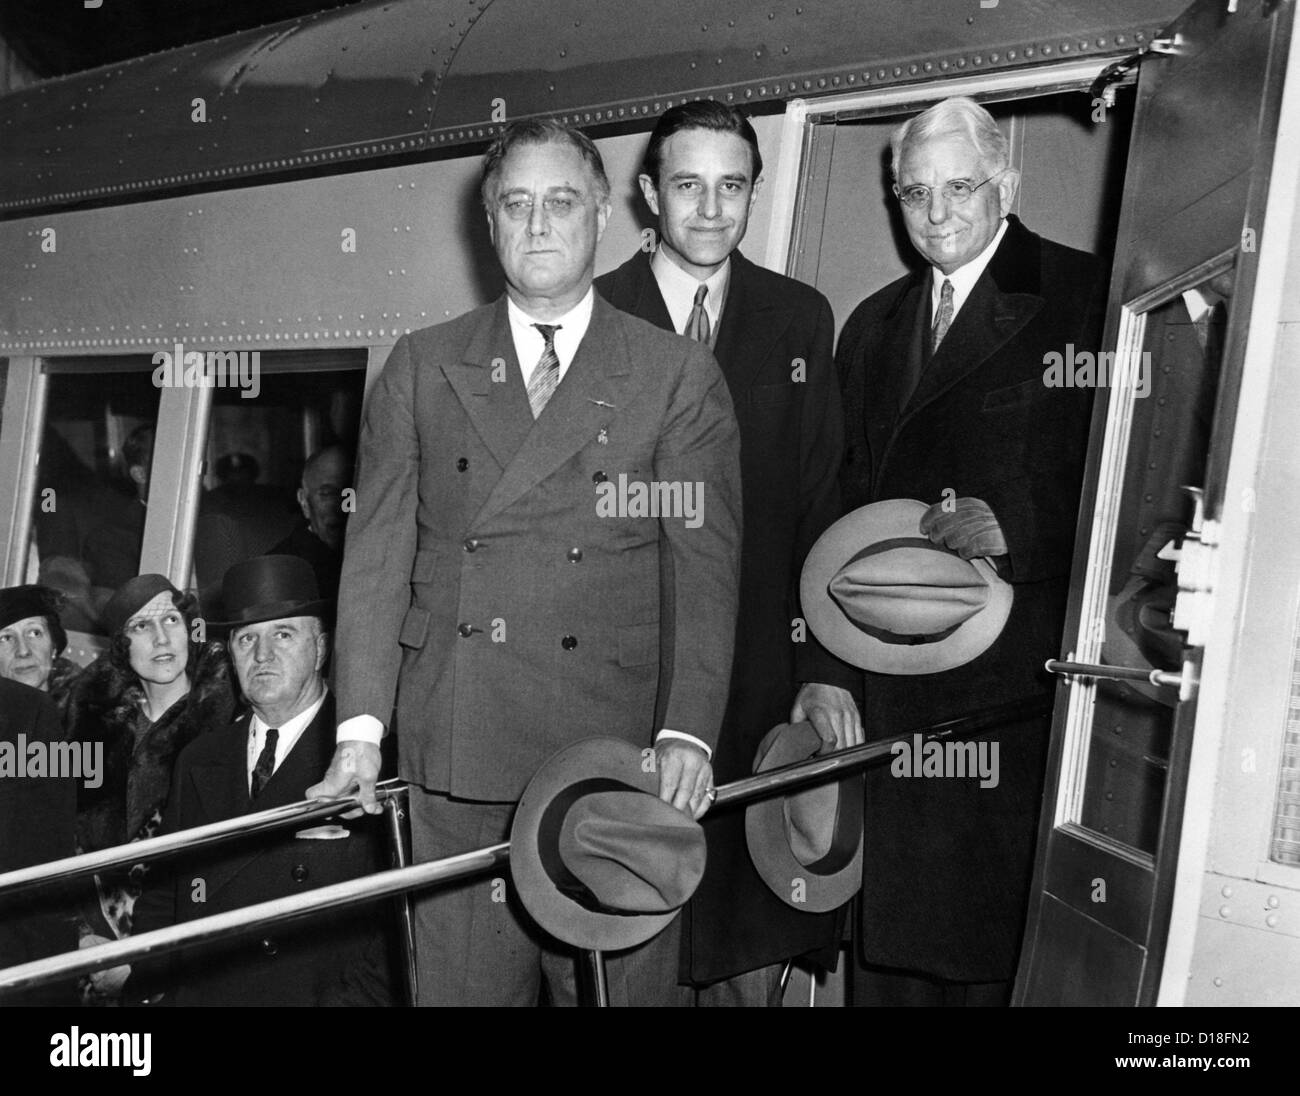 President Franklin Roosevelt inspects the new Union Pacific Streamliners. He is with Averill Harriman, Chairman Stock Photo